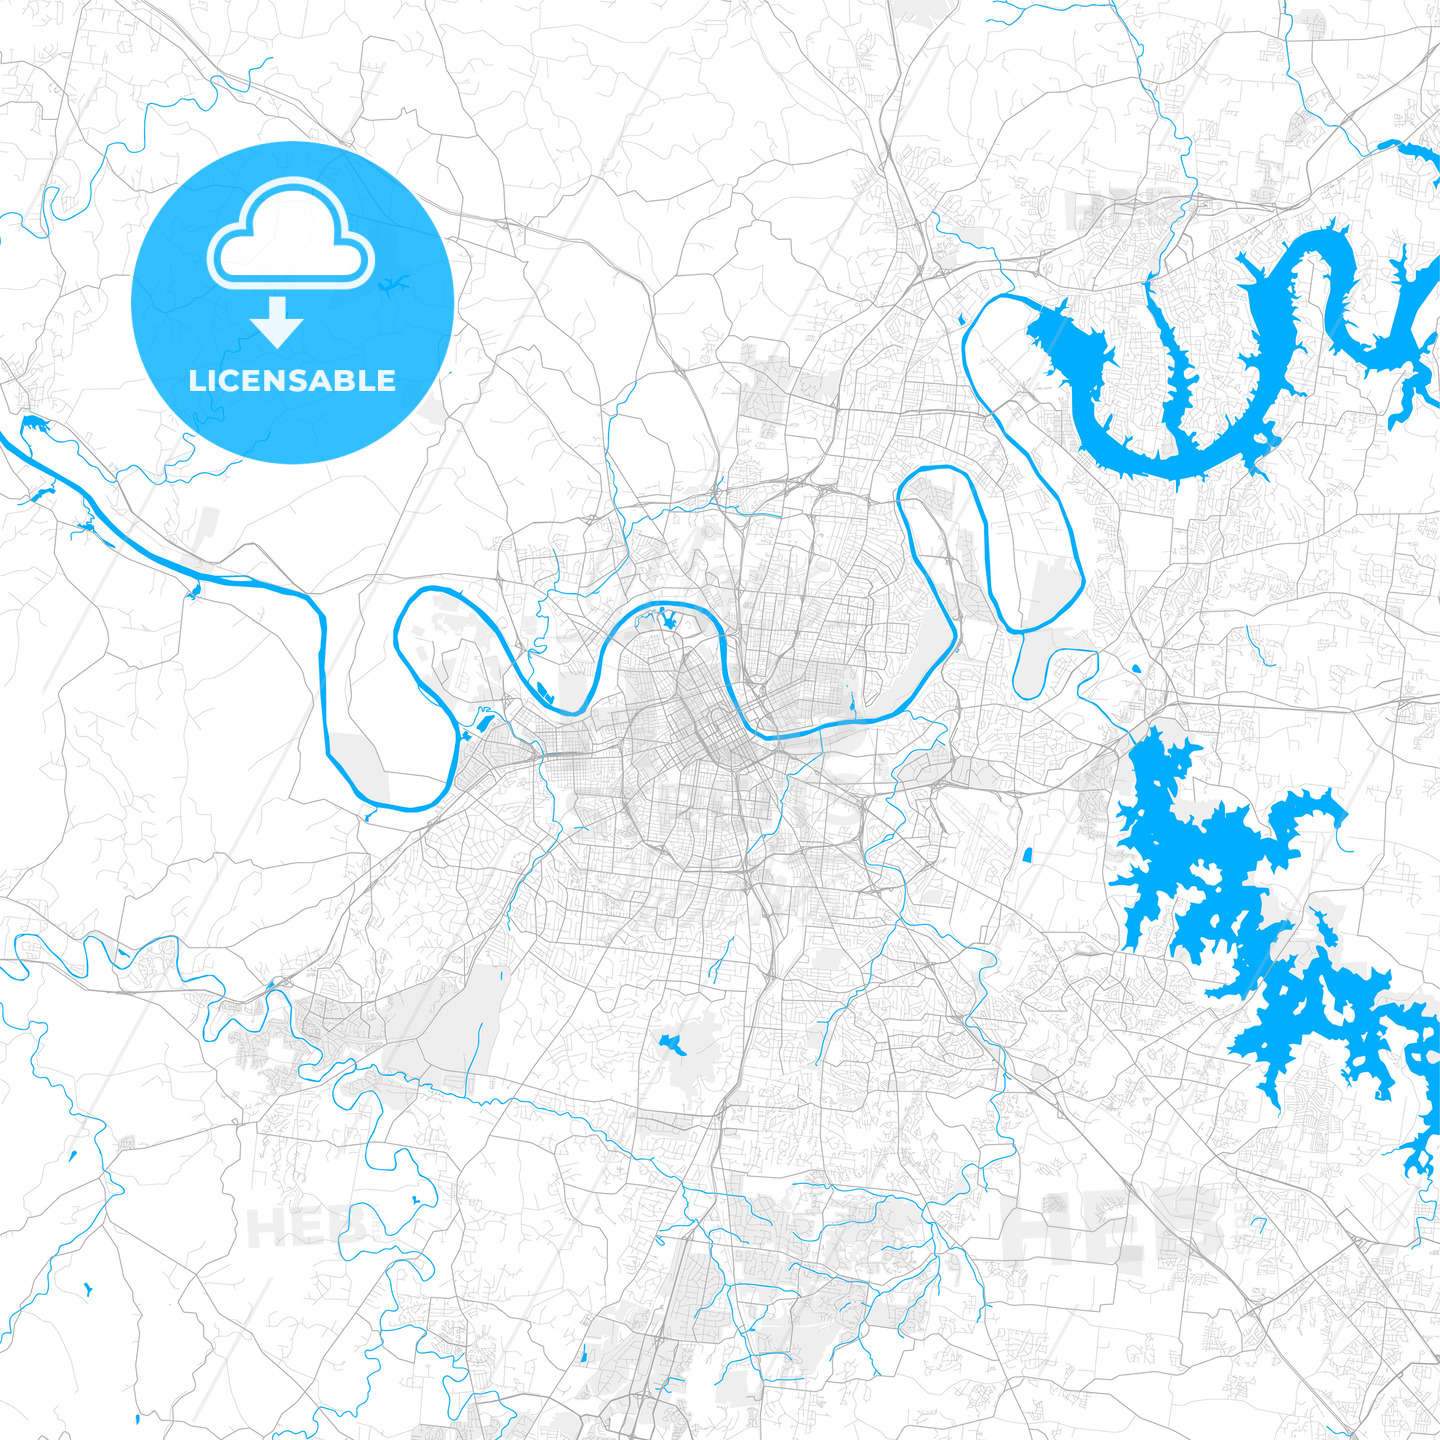 Rich detailed vector map of Nashville, Tennessee, U.S.A.